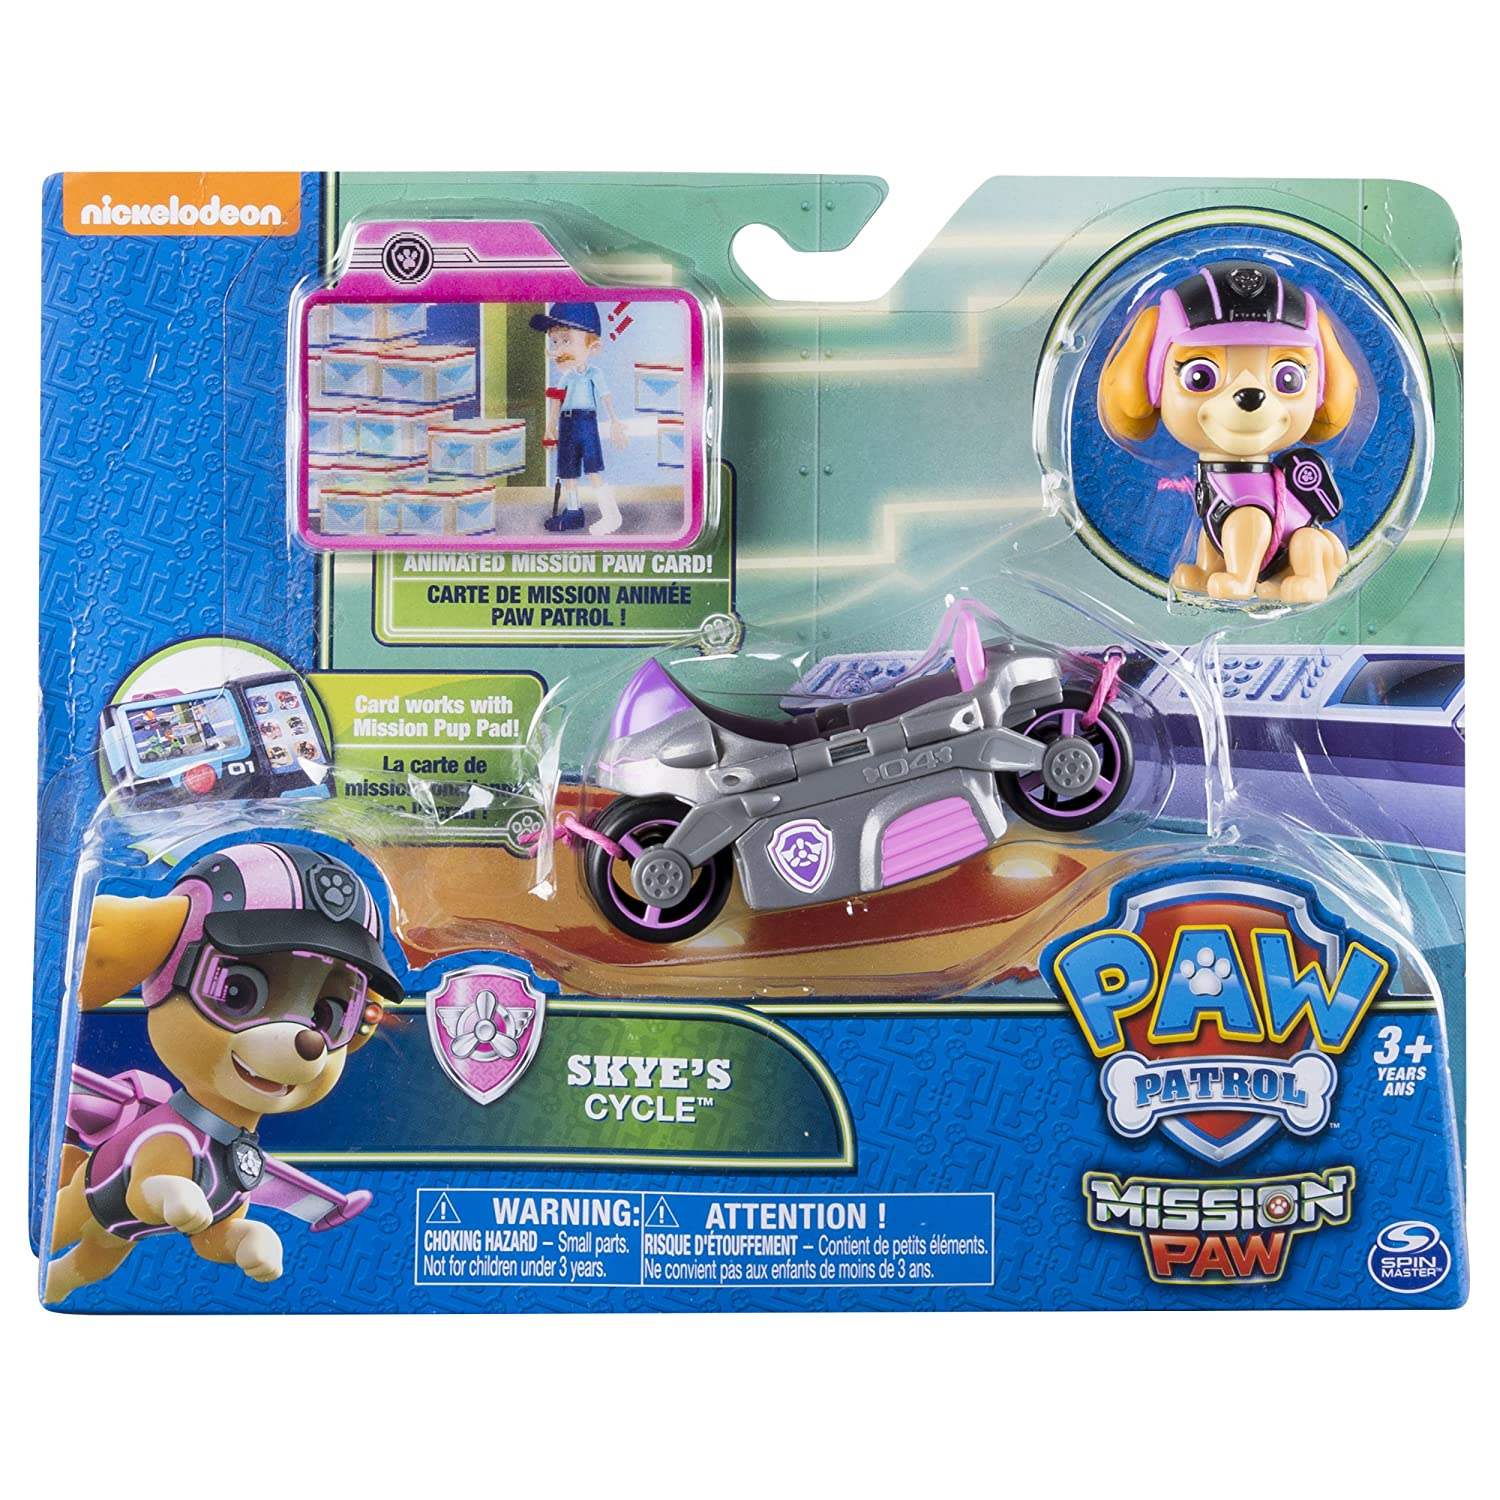 Connu Paw Patrol Mission Paw - Skye's Cycle - Figure and Vehicle: Amazon  AT08